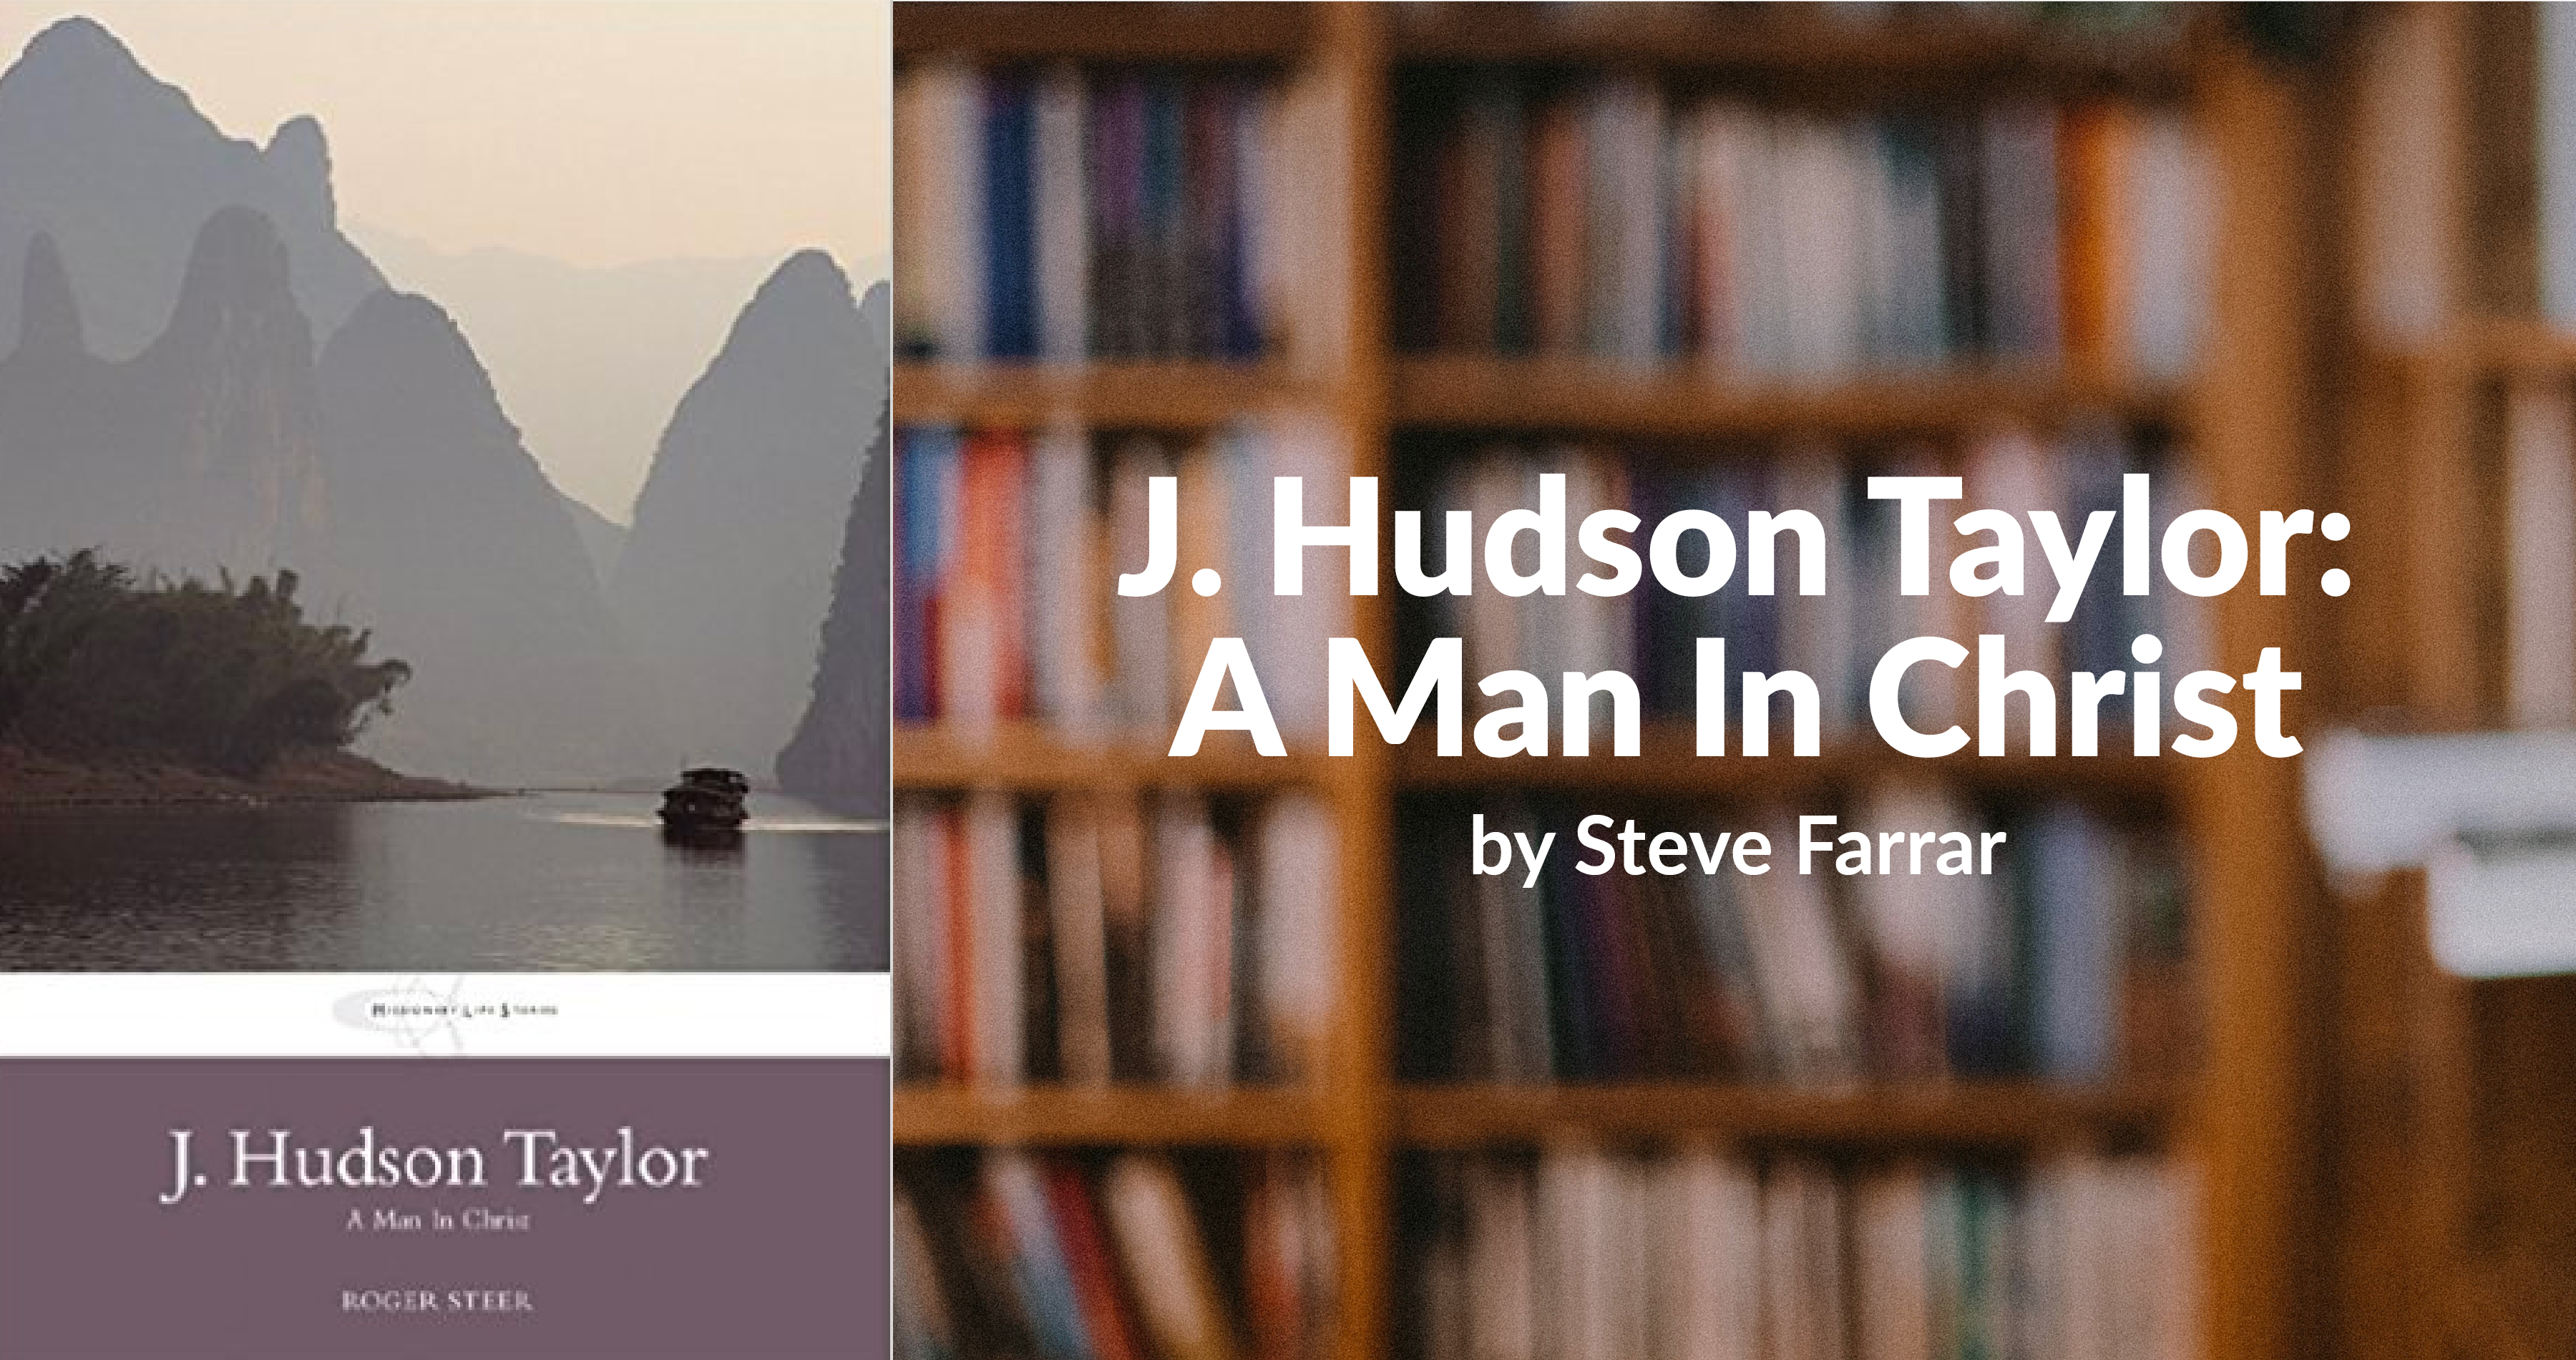 J. Hudson Taylor: A Man in Christ